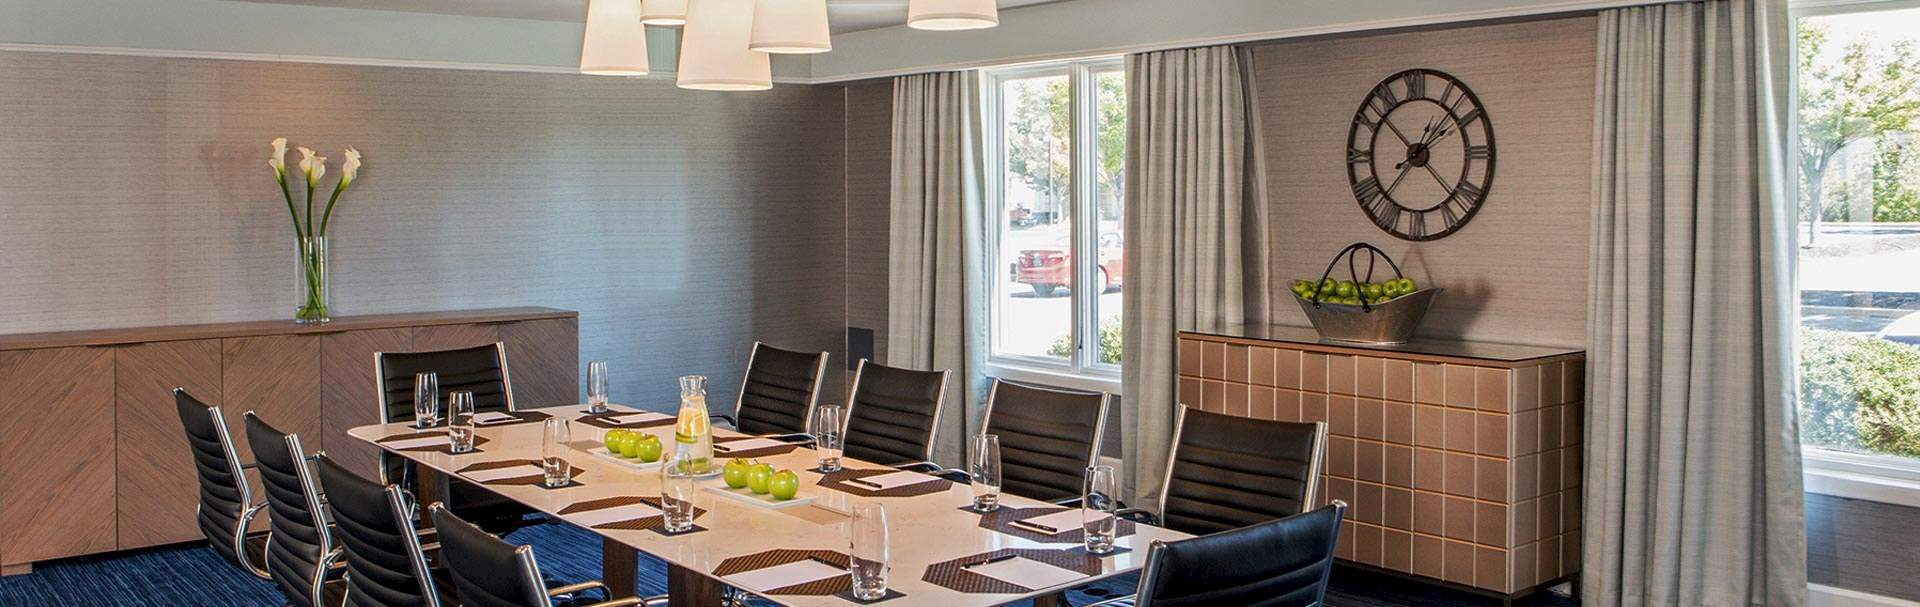 Meeting and Event Venues at Hilton Wilmington/Christiana Newark, Delaware